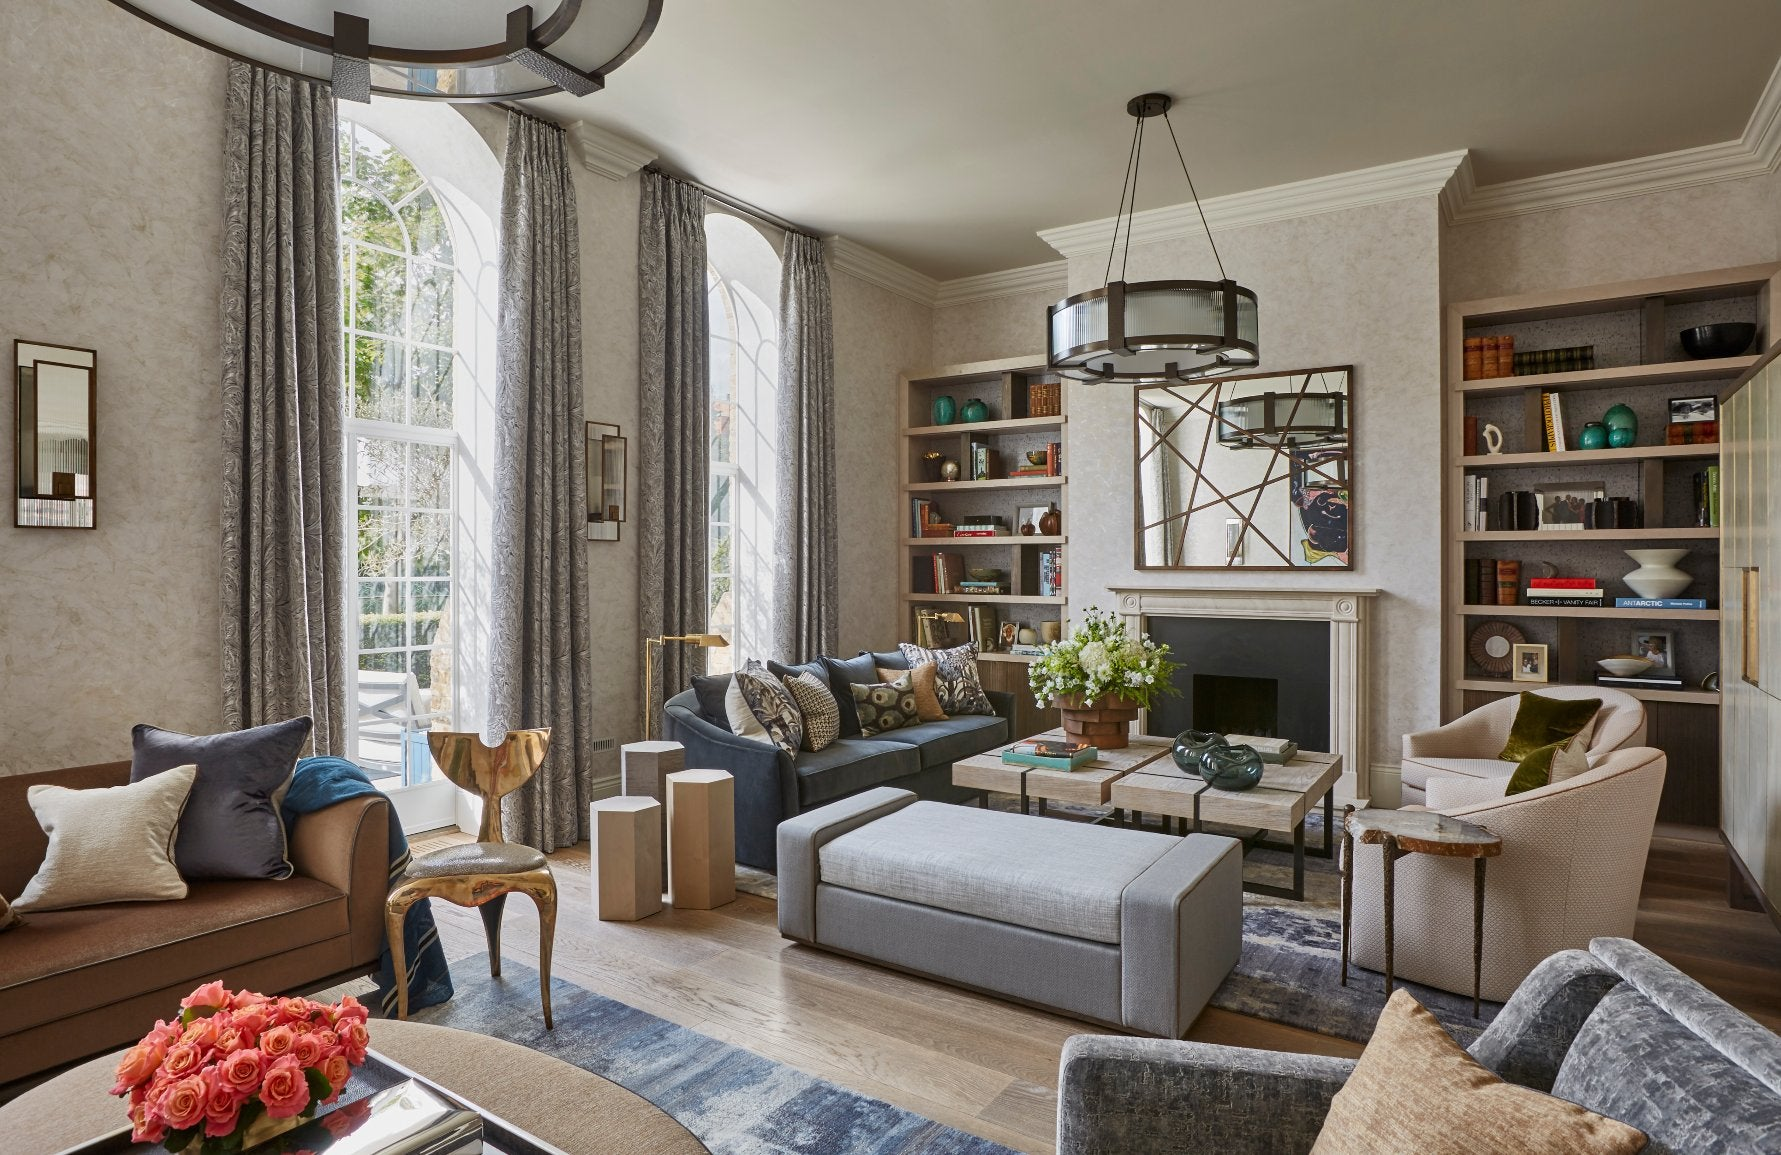 The Best of Luxury Interiors & Interior Designers in London – Helen Green Chelsea Family Home – LuxDeco.com Style Guide